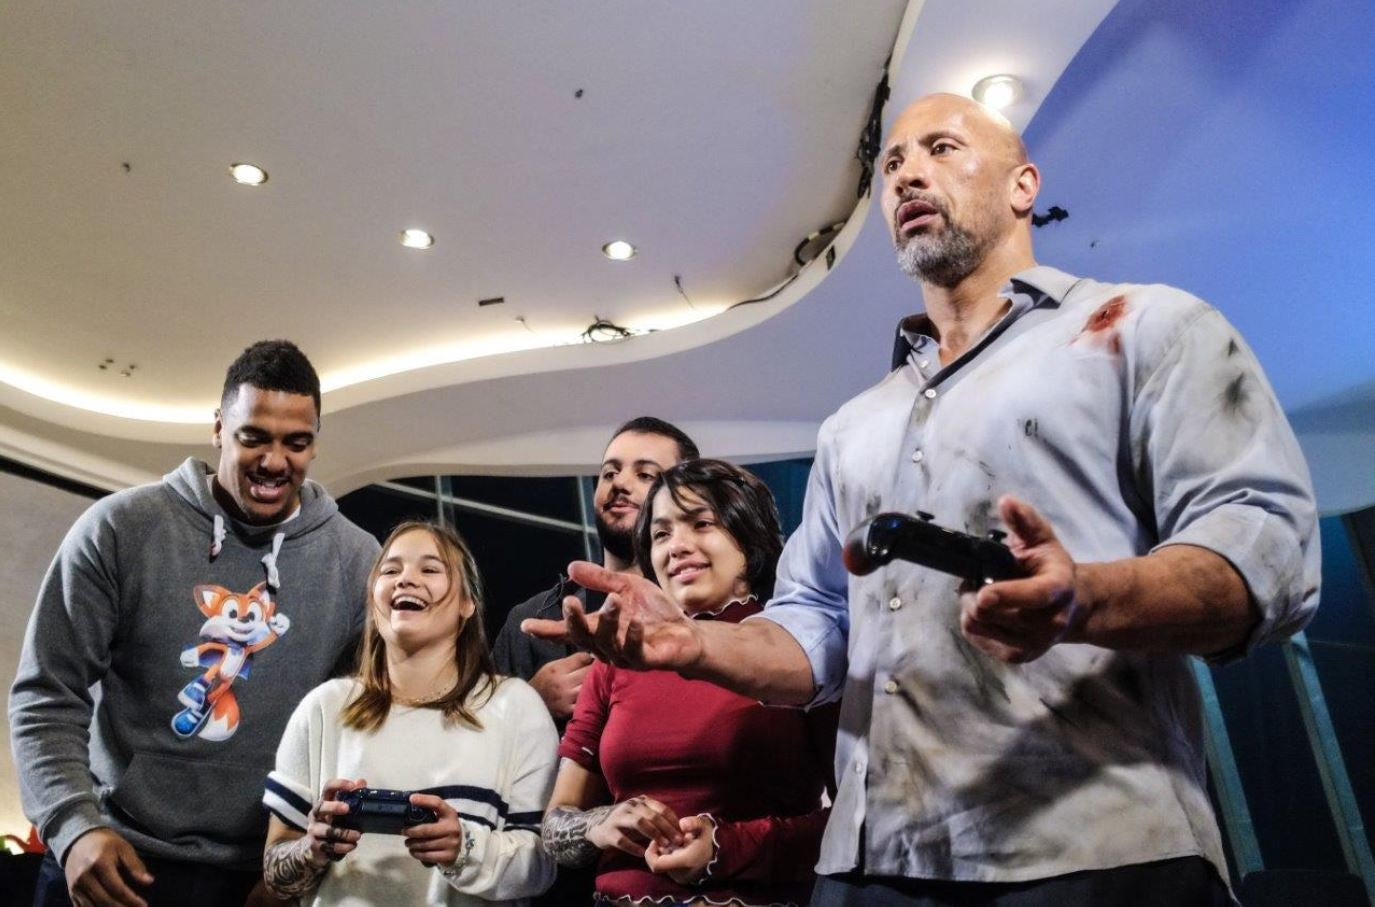 The Rock And Make A Wish Foundation Team Up To Give Away Custom Xbox     The Rock And Make A Wish Foundation Team Up To Give Away Custom Xbox One X  Consoles